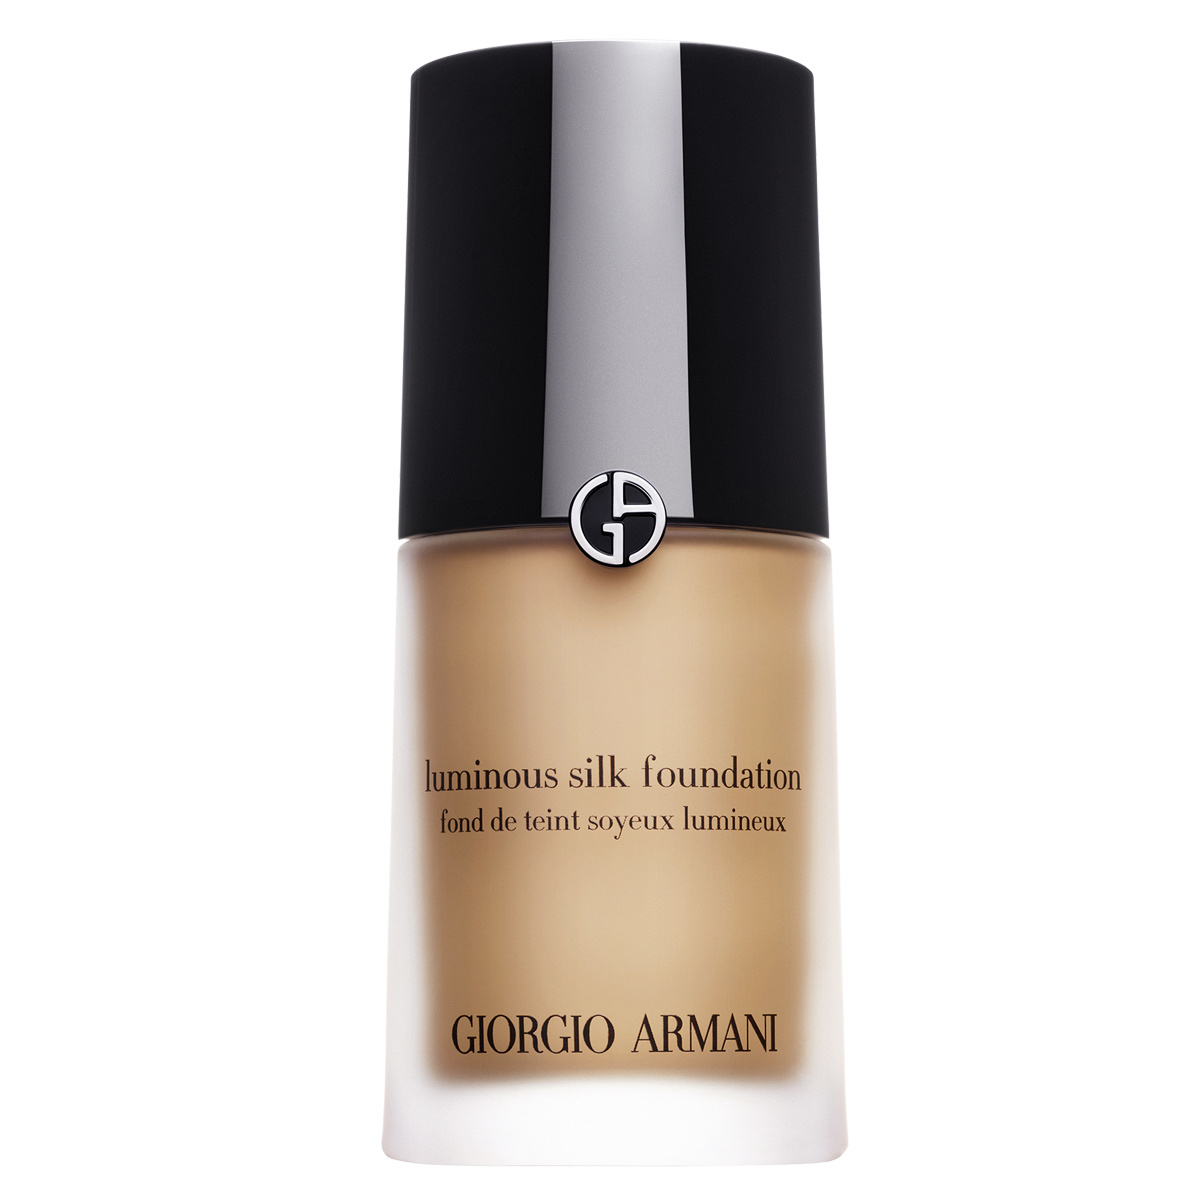 Base de maquillaje Luminous SIlk Foundation, Giorgio Armani.